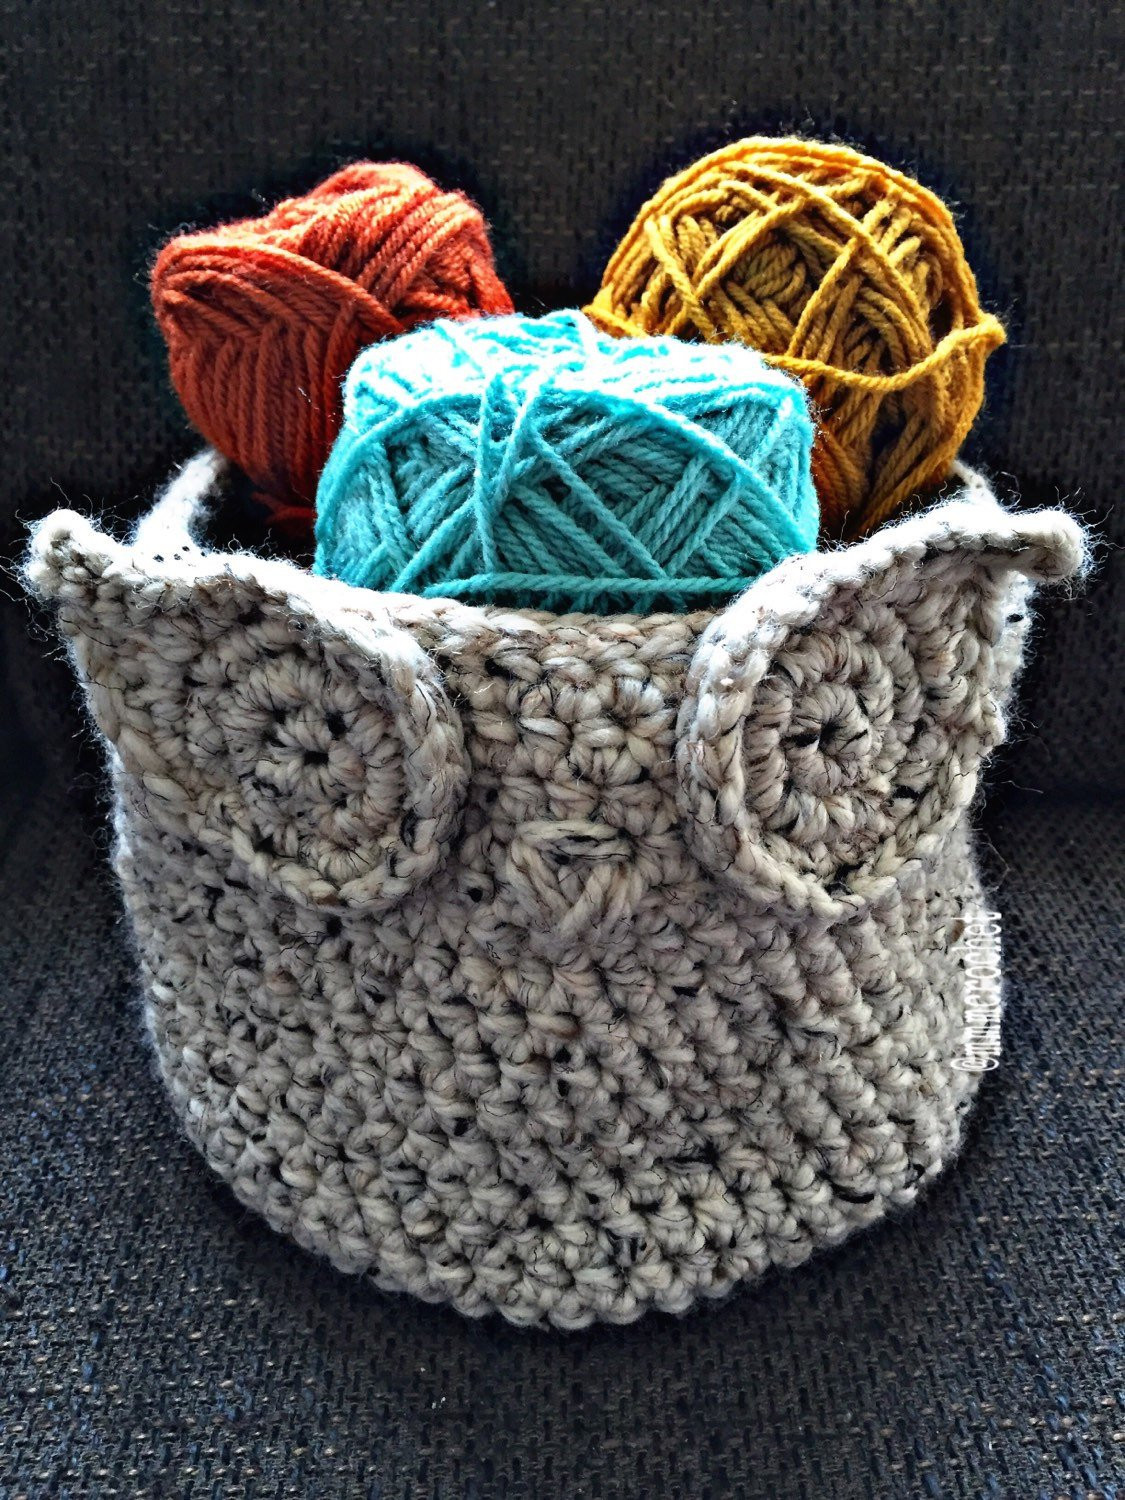 New Handcrafted Crochet Owl Basket Crochet Owl Basket Of Brilliant 47 Photos Crochet Owl Basket